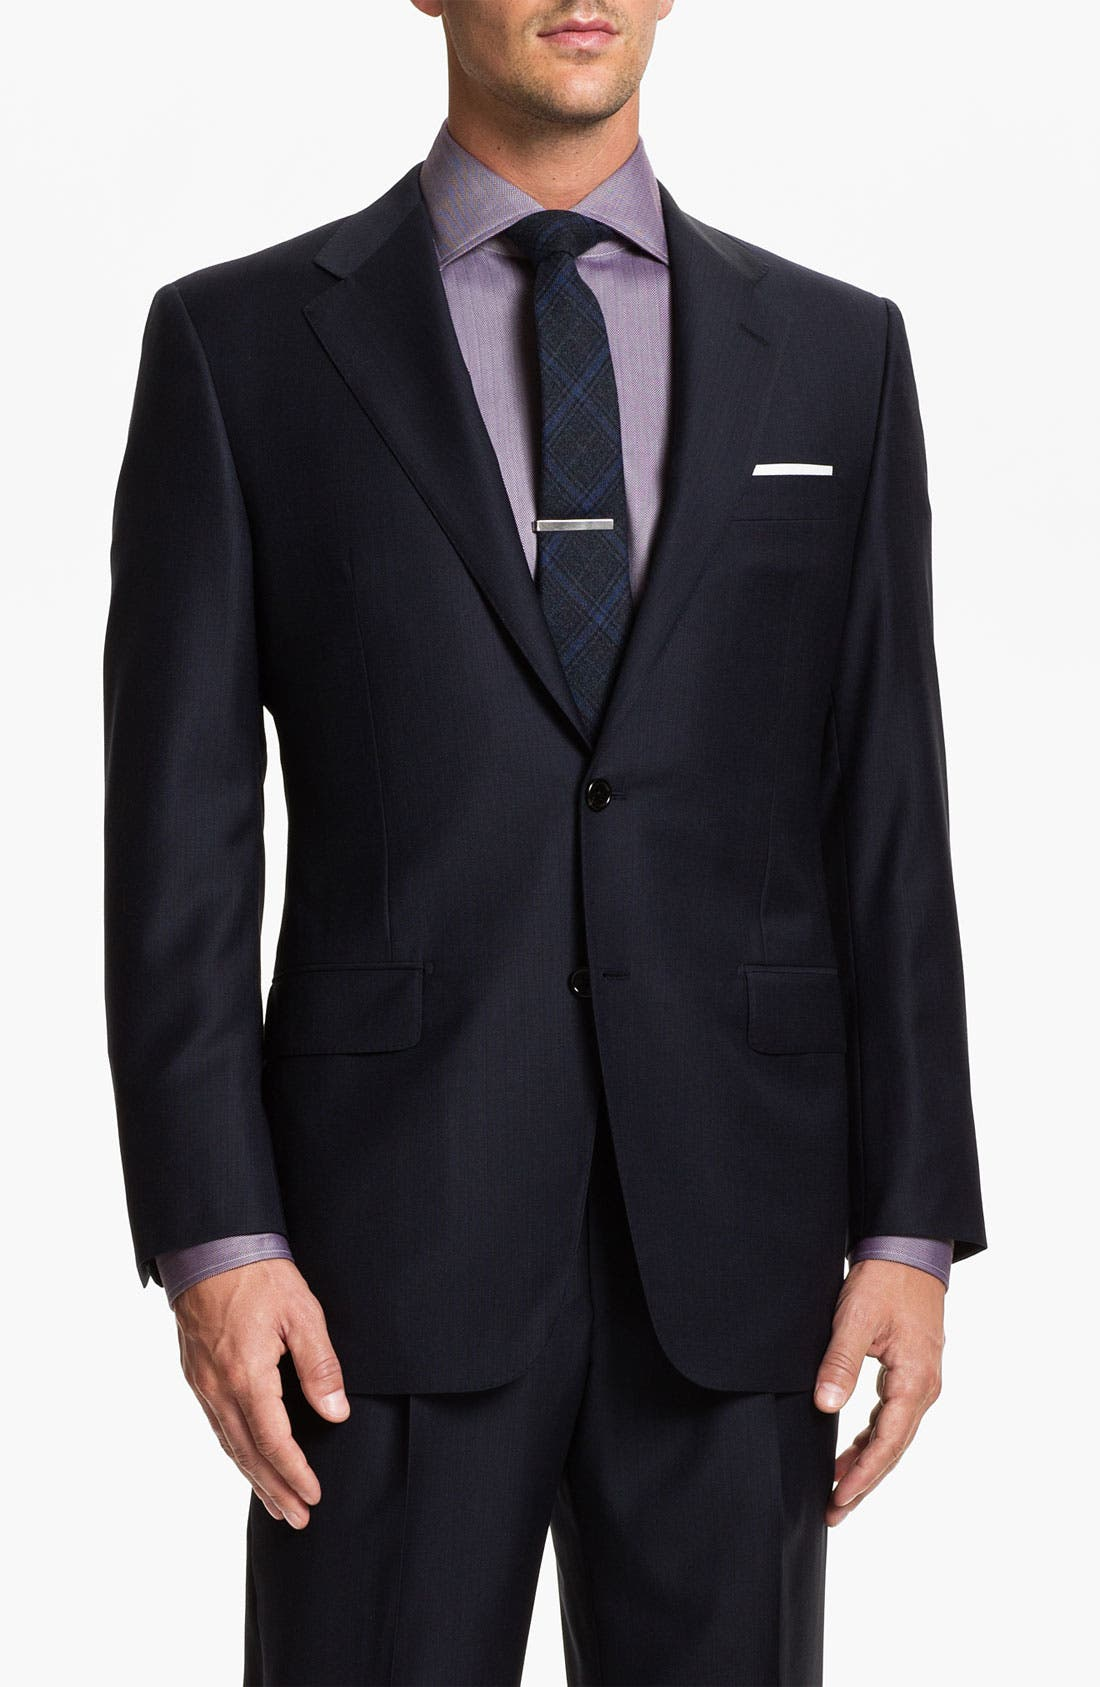 Main Image - Hickey Freeman 'A Series' Worsted Wool Suit